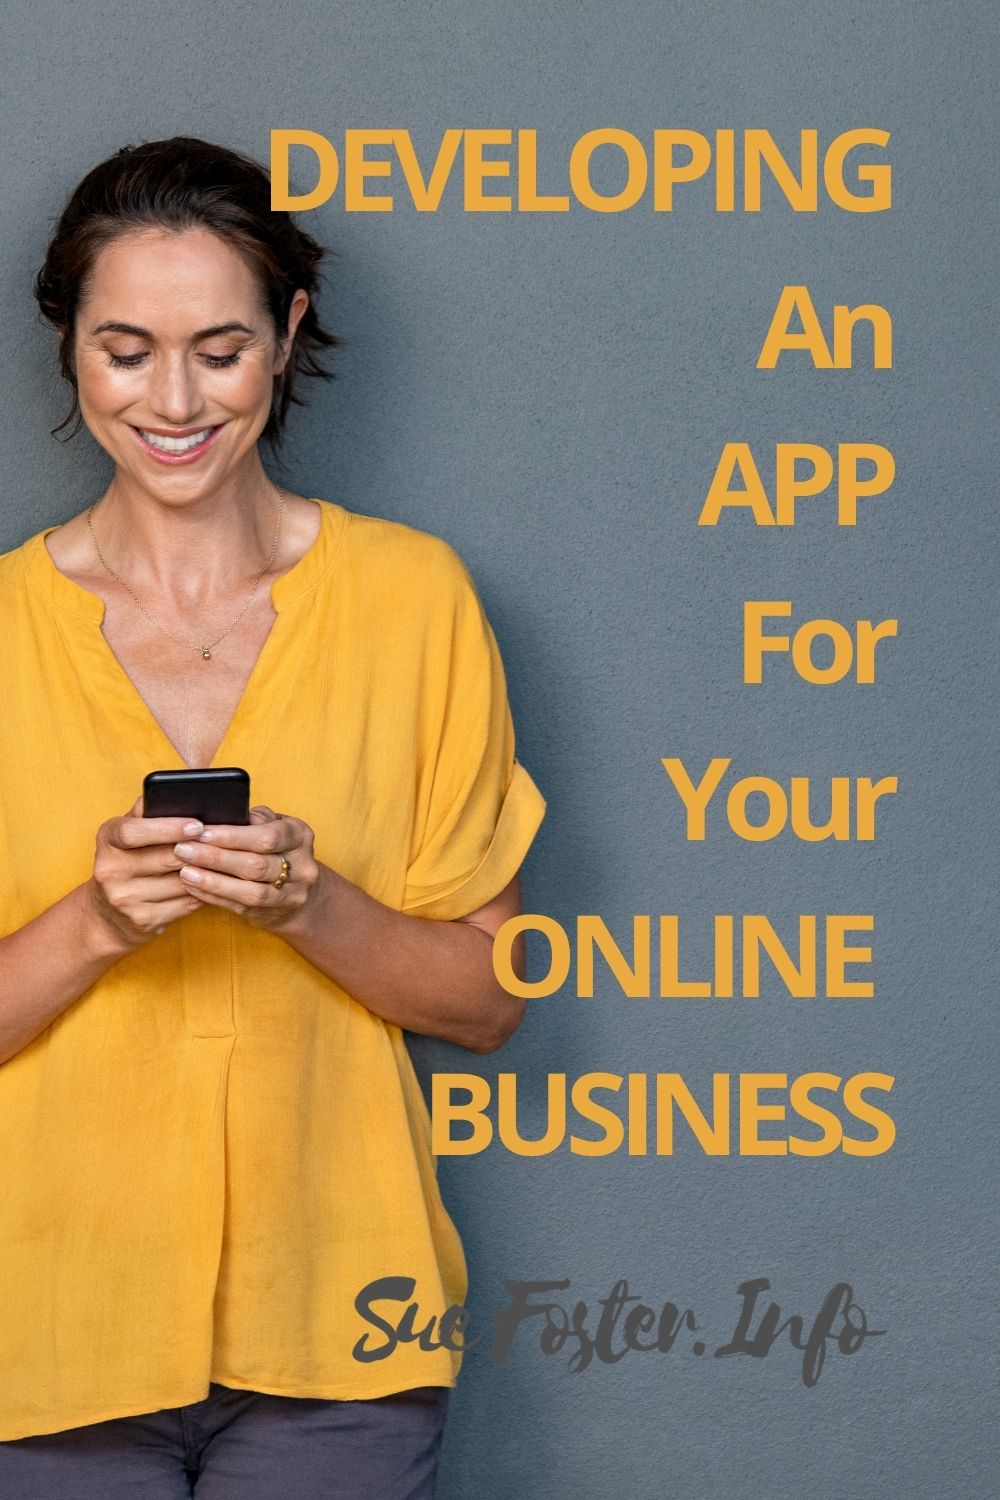 Developing an app for your online business.